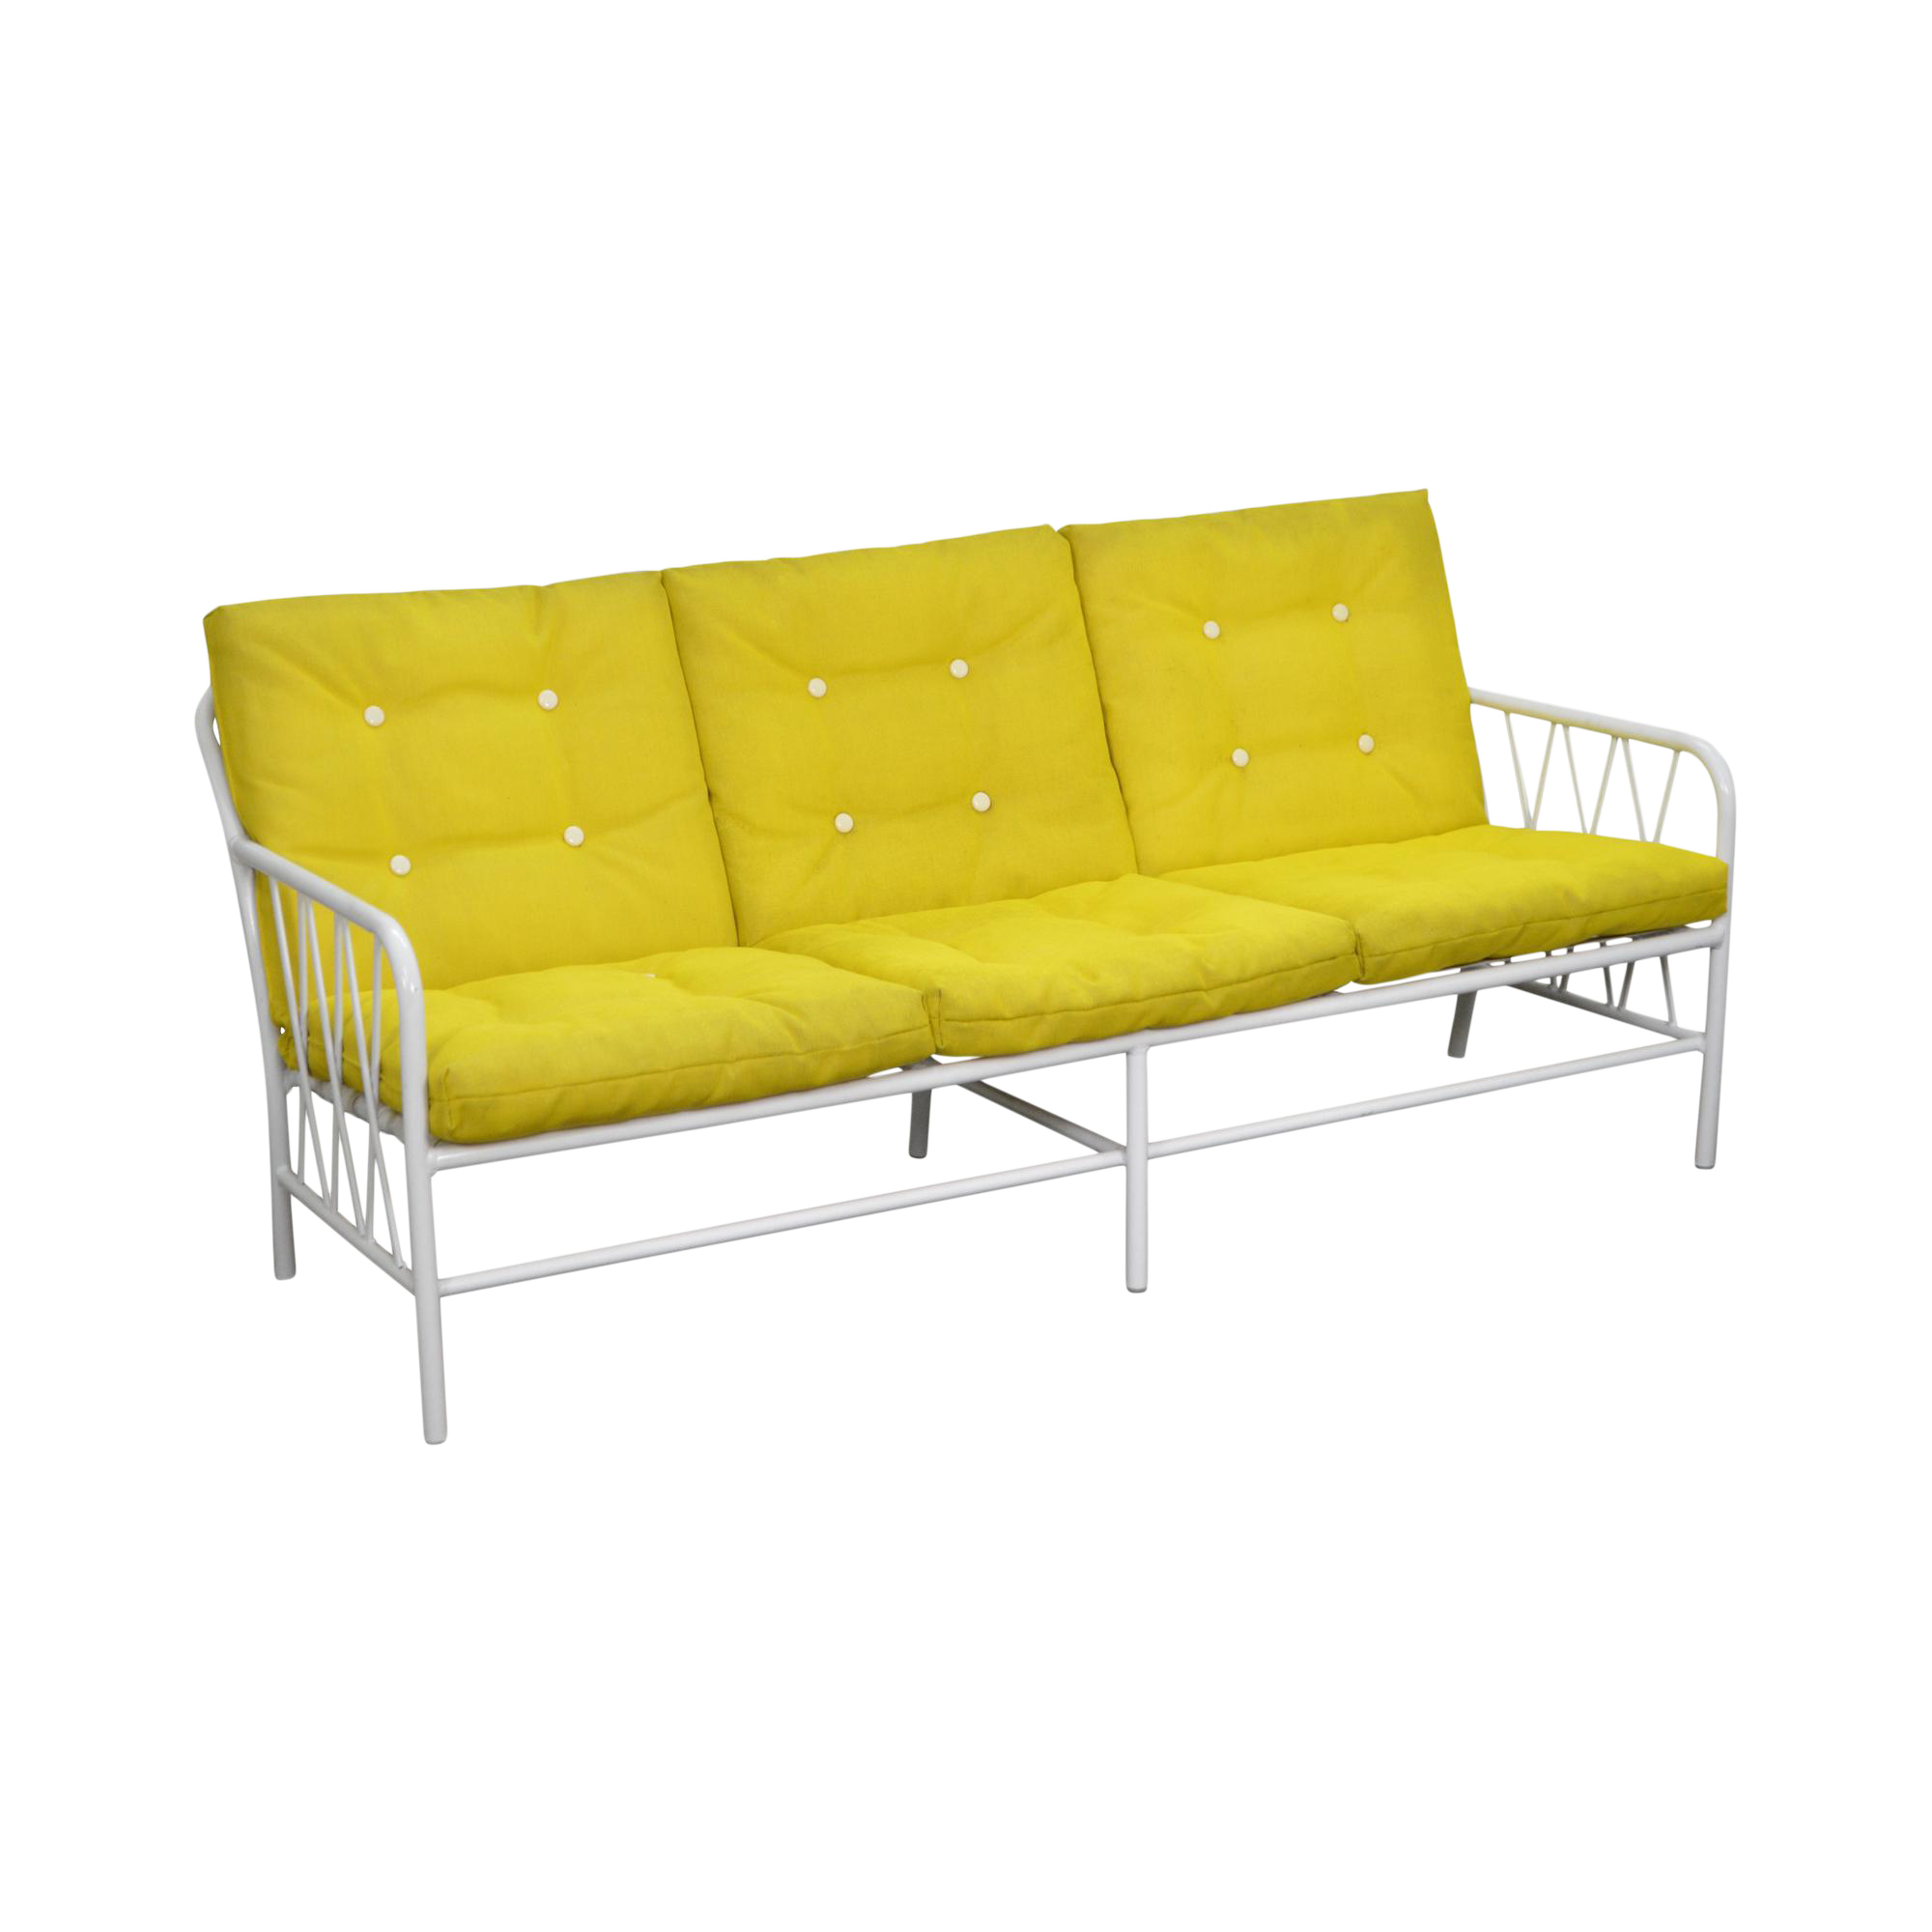 mid century modern brown jordan style white patio sofa w yellow cushions - Mid Century Modern Patio Furniture